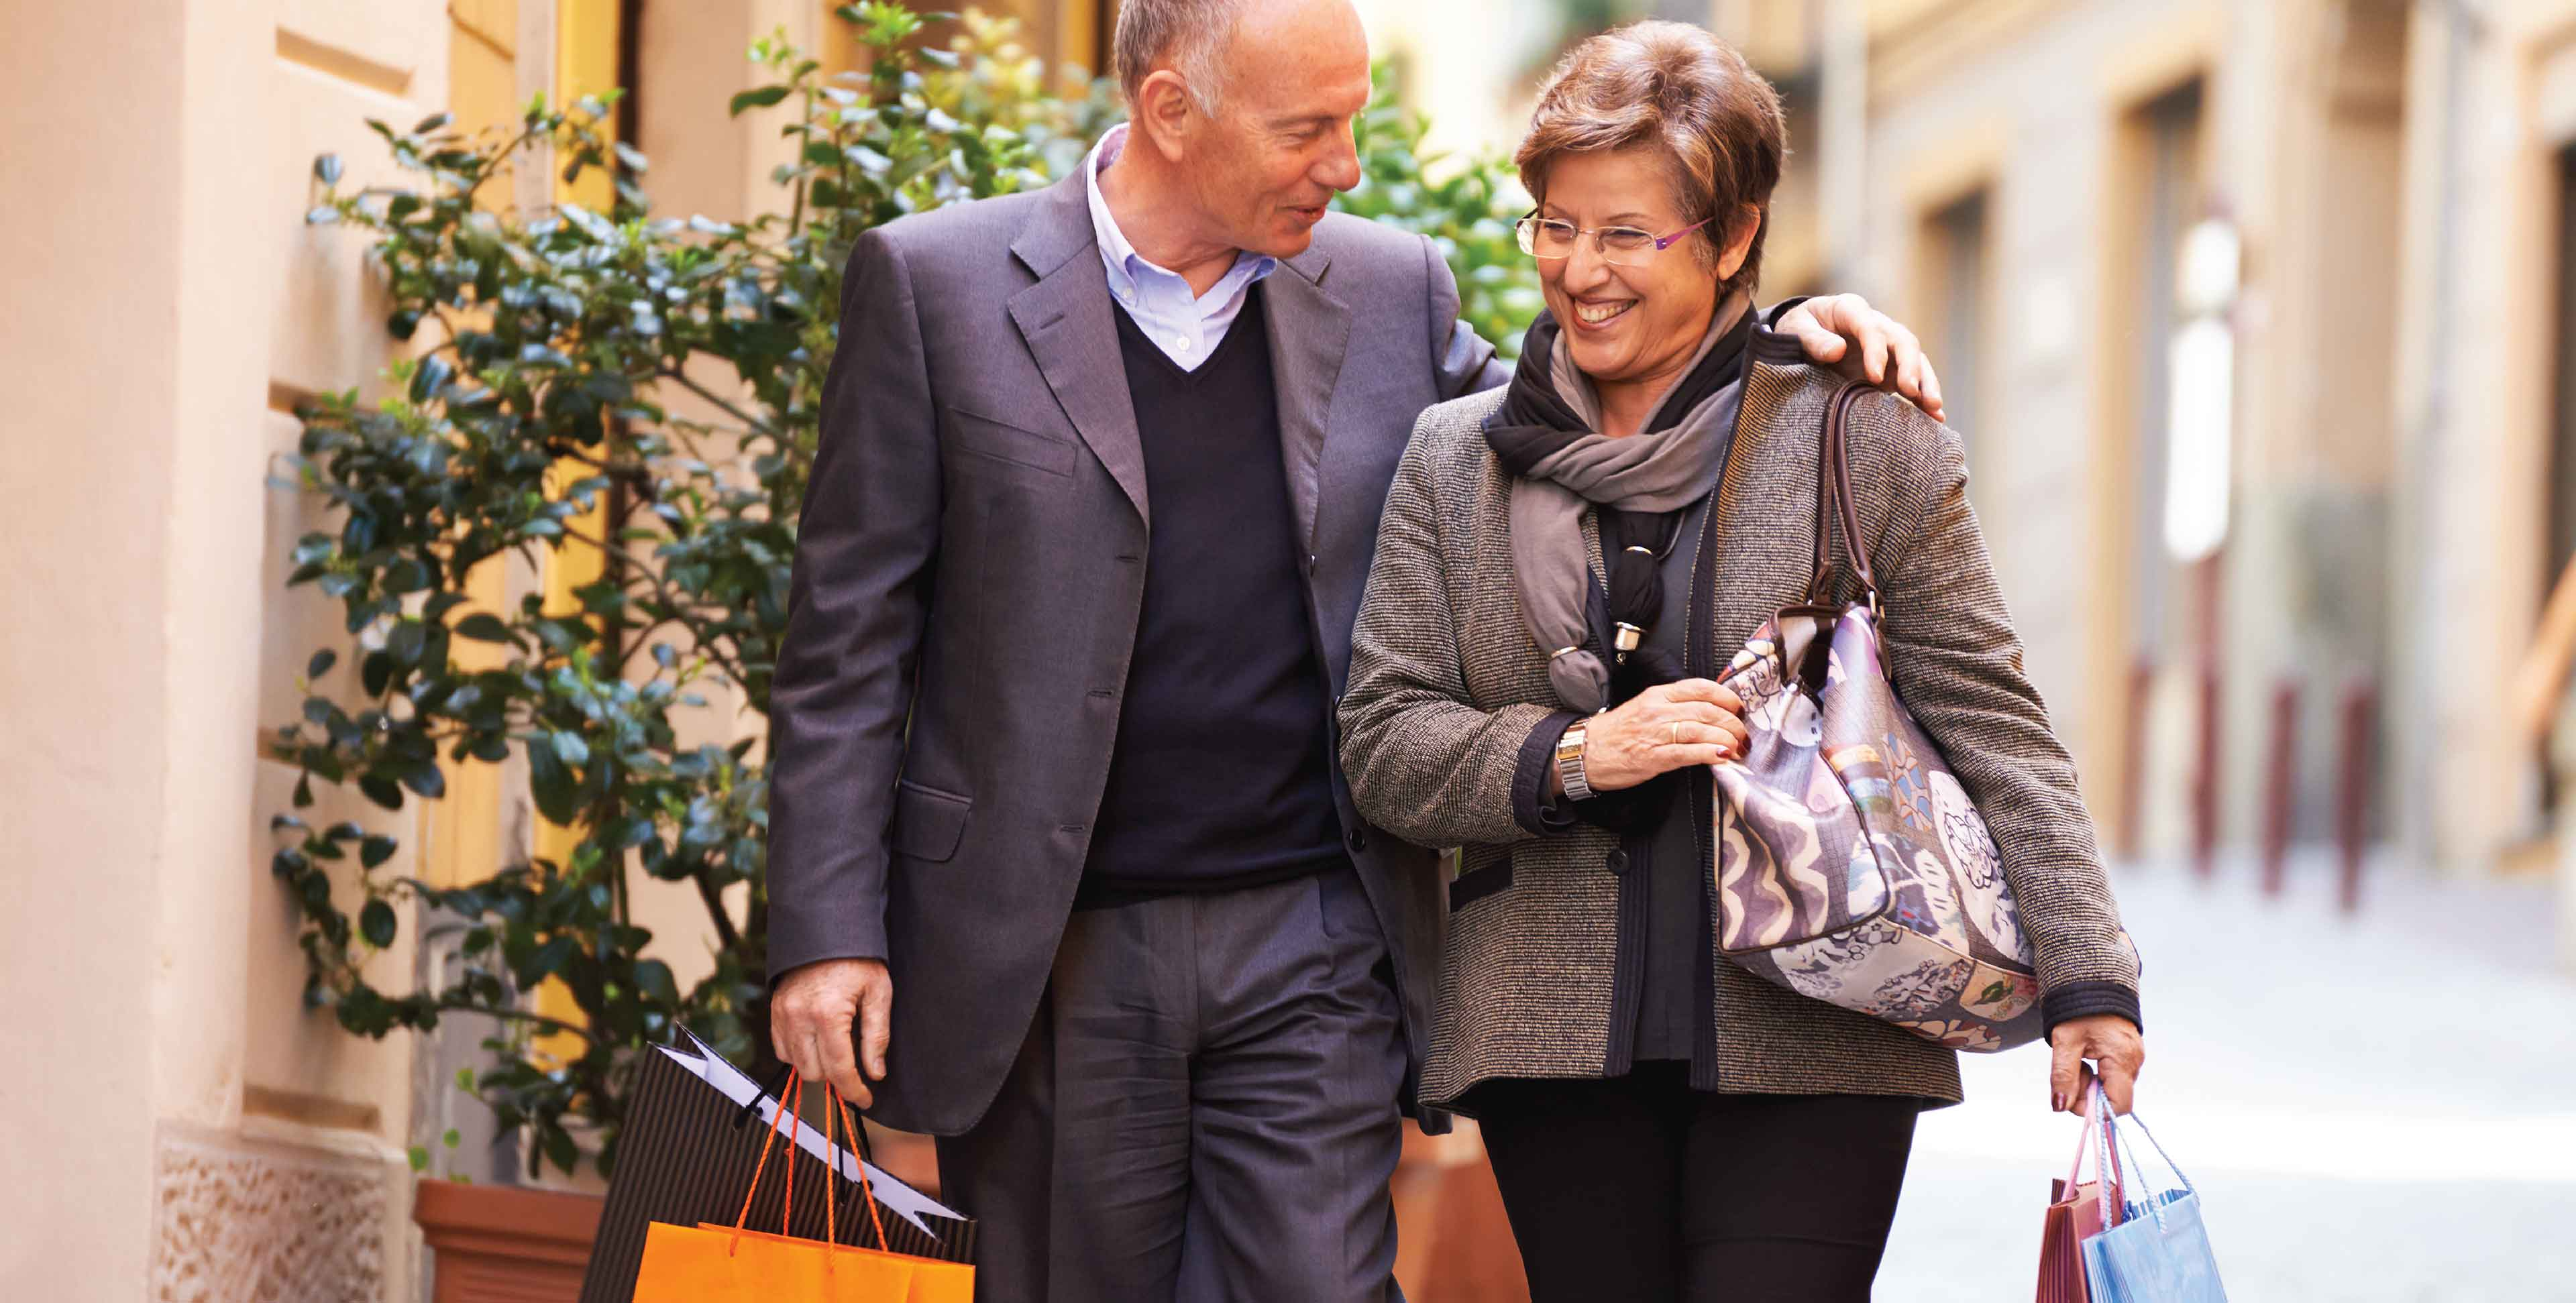 Older couple walking with shopping bags